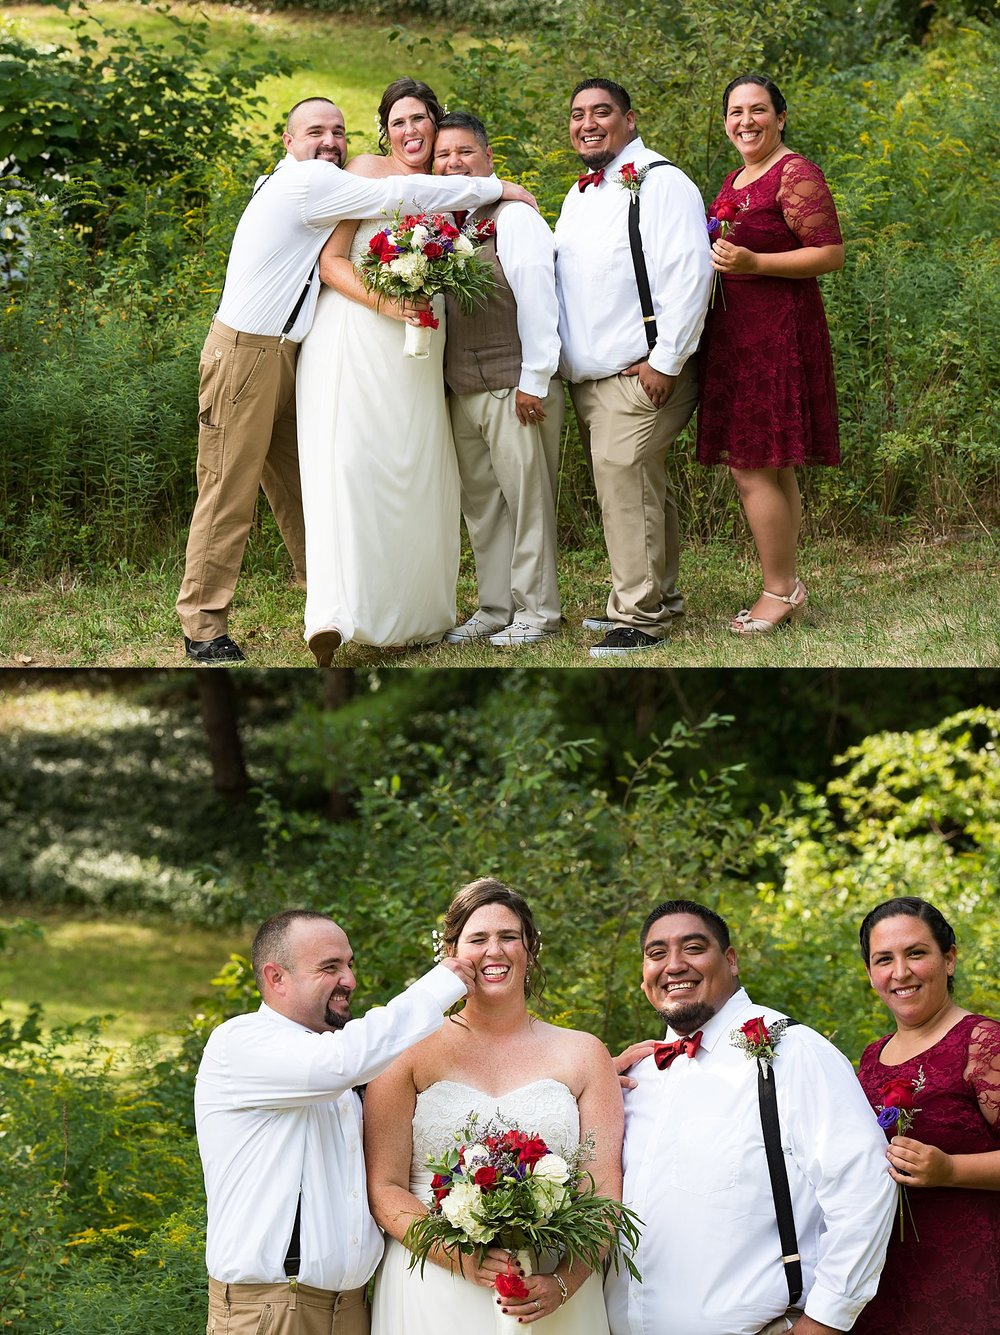 wedding photographer in bourne massachusetts.jpg